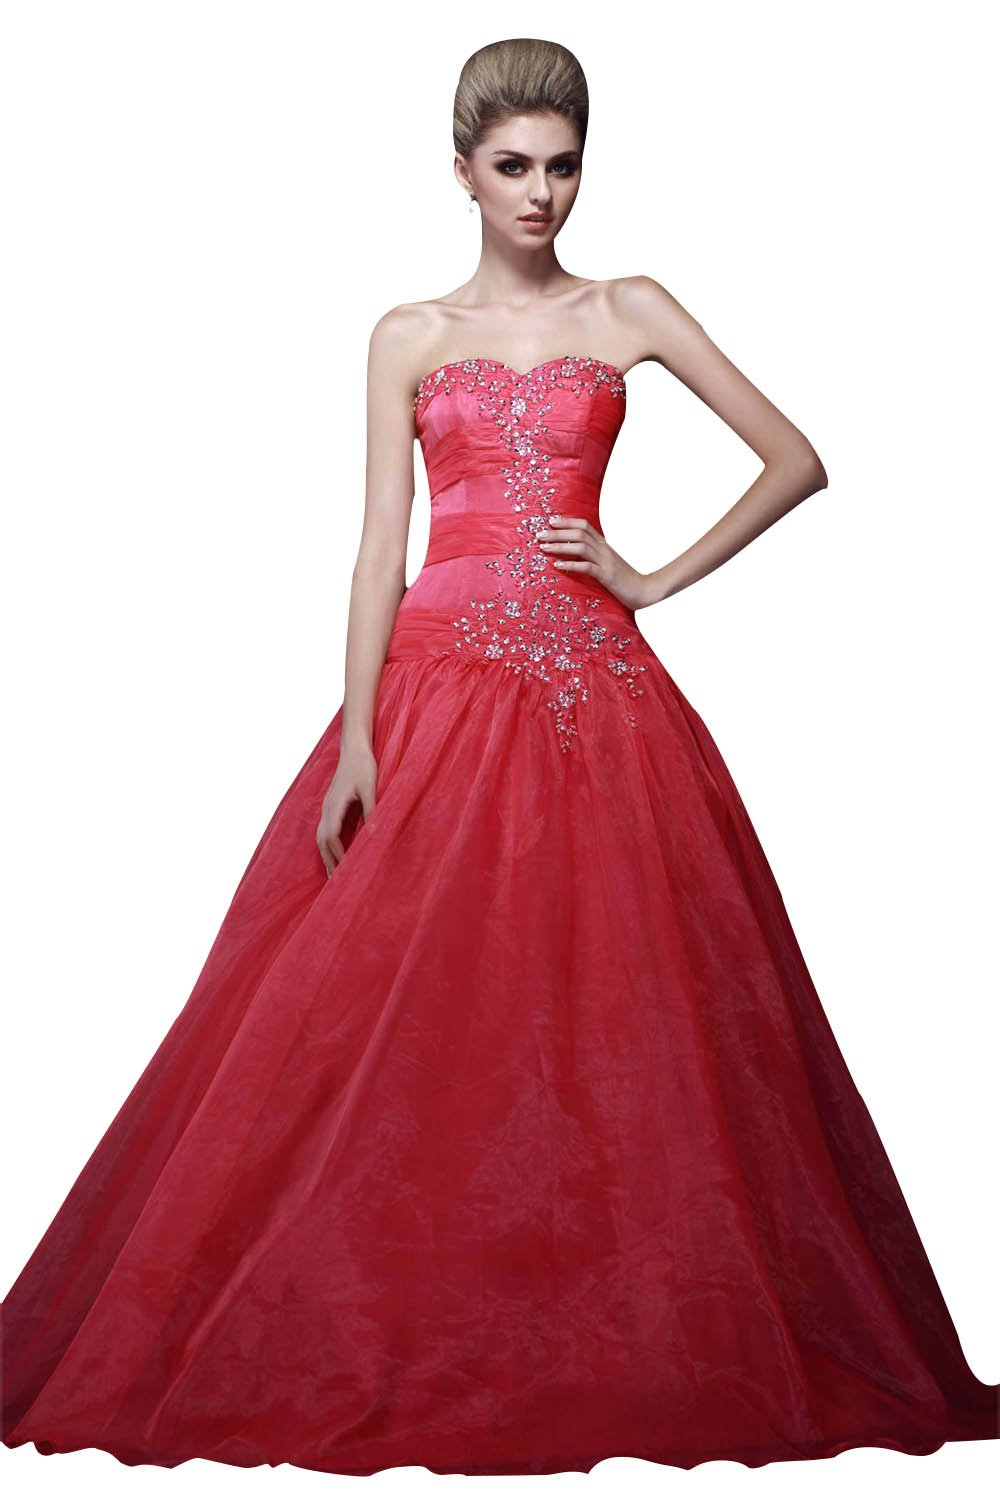 Snowskite Women's Charming A-line Sweetheart Organza Beaded Prom Quinceanera Dress Coral 10